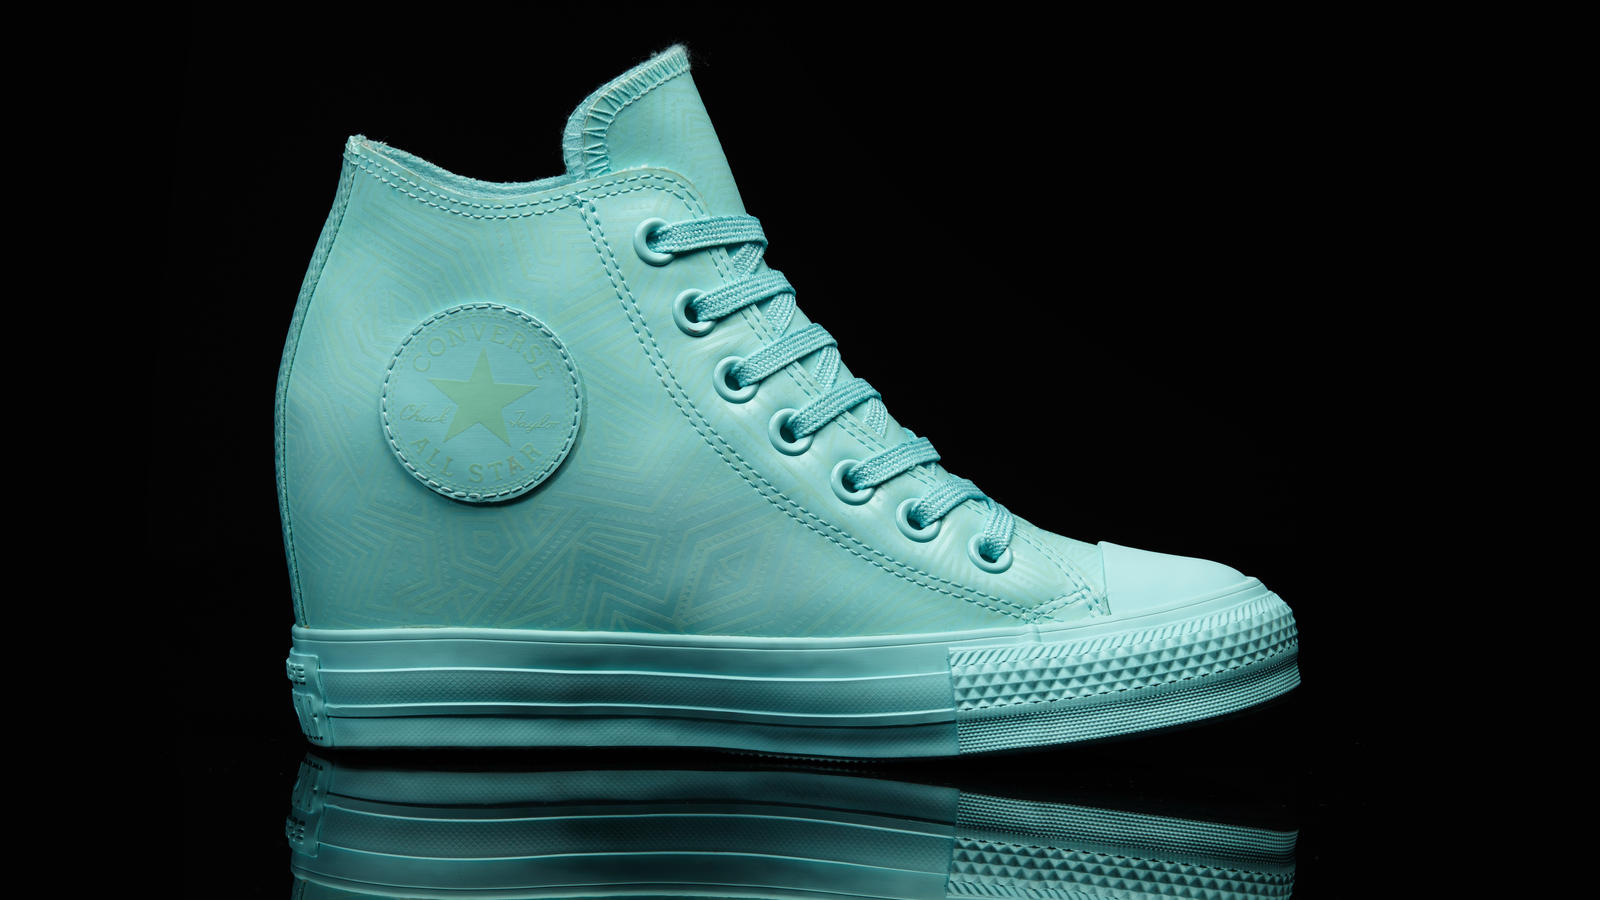 Converse Chuck Taylor All Star Rubber Trainers Collection